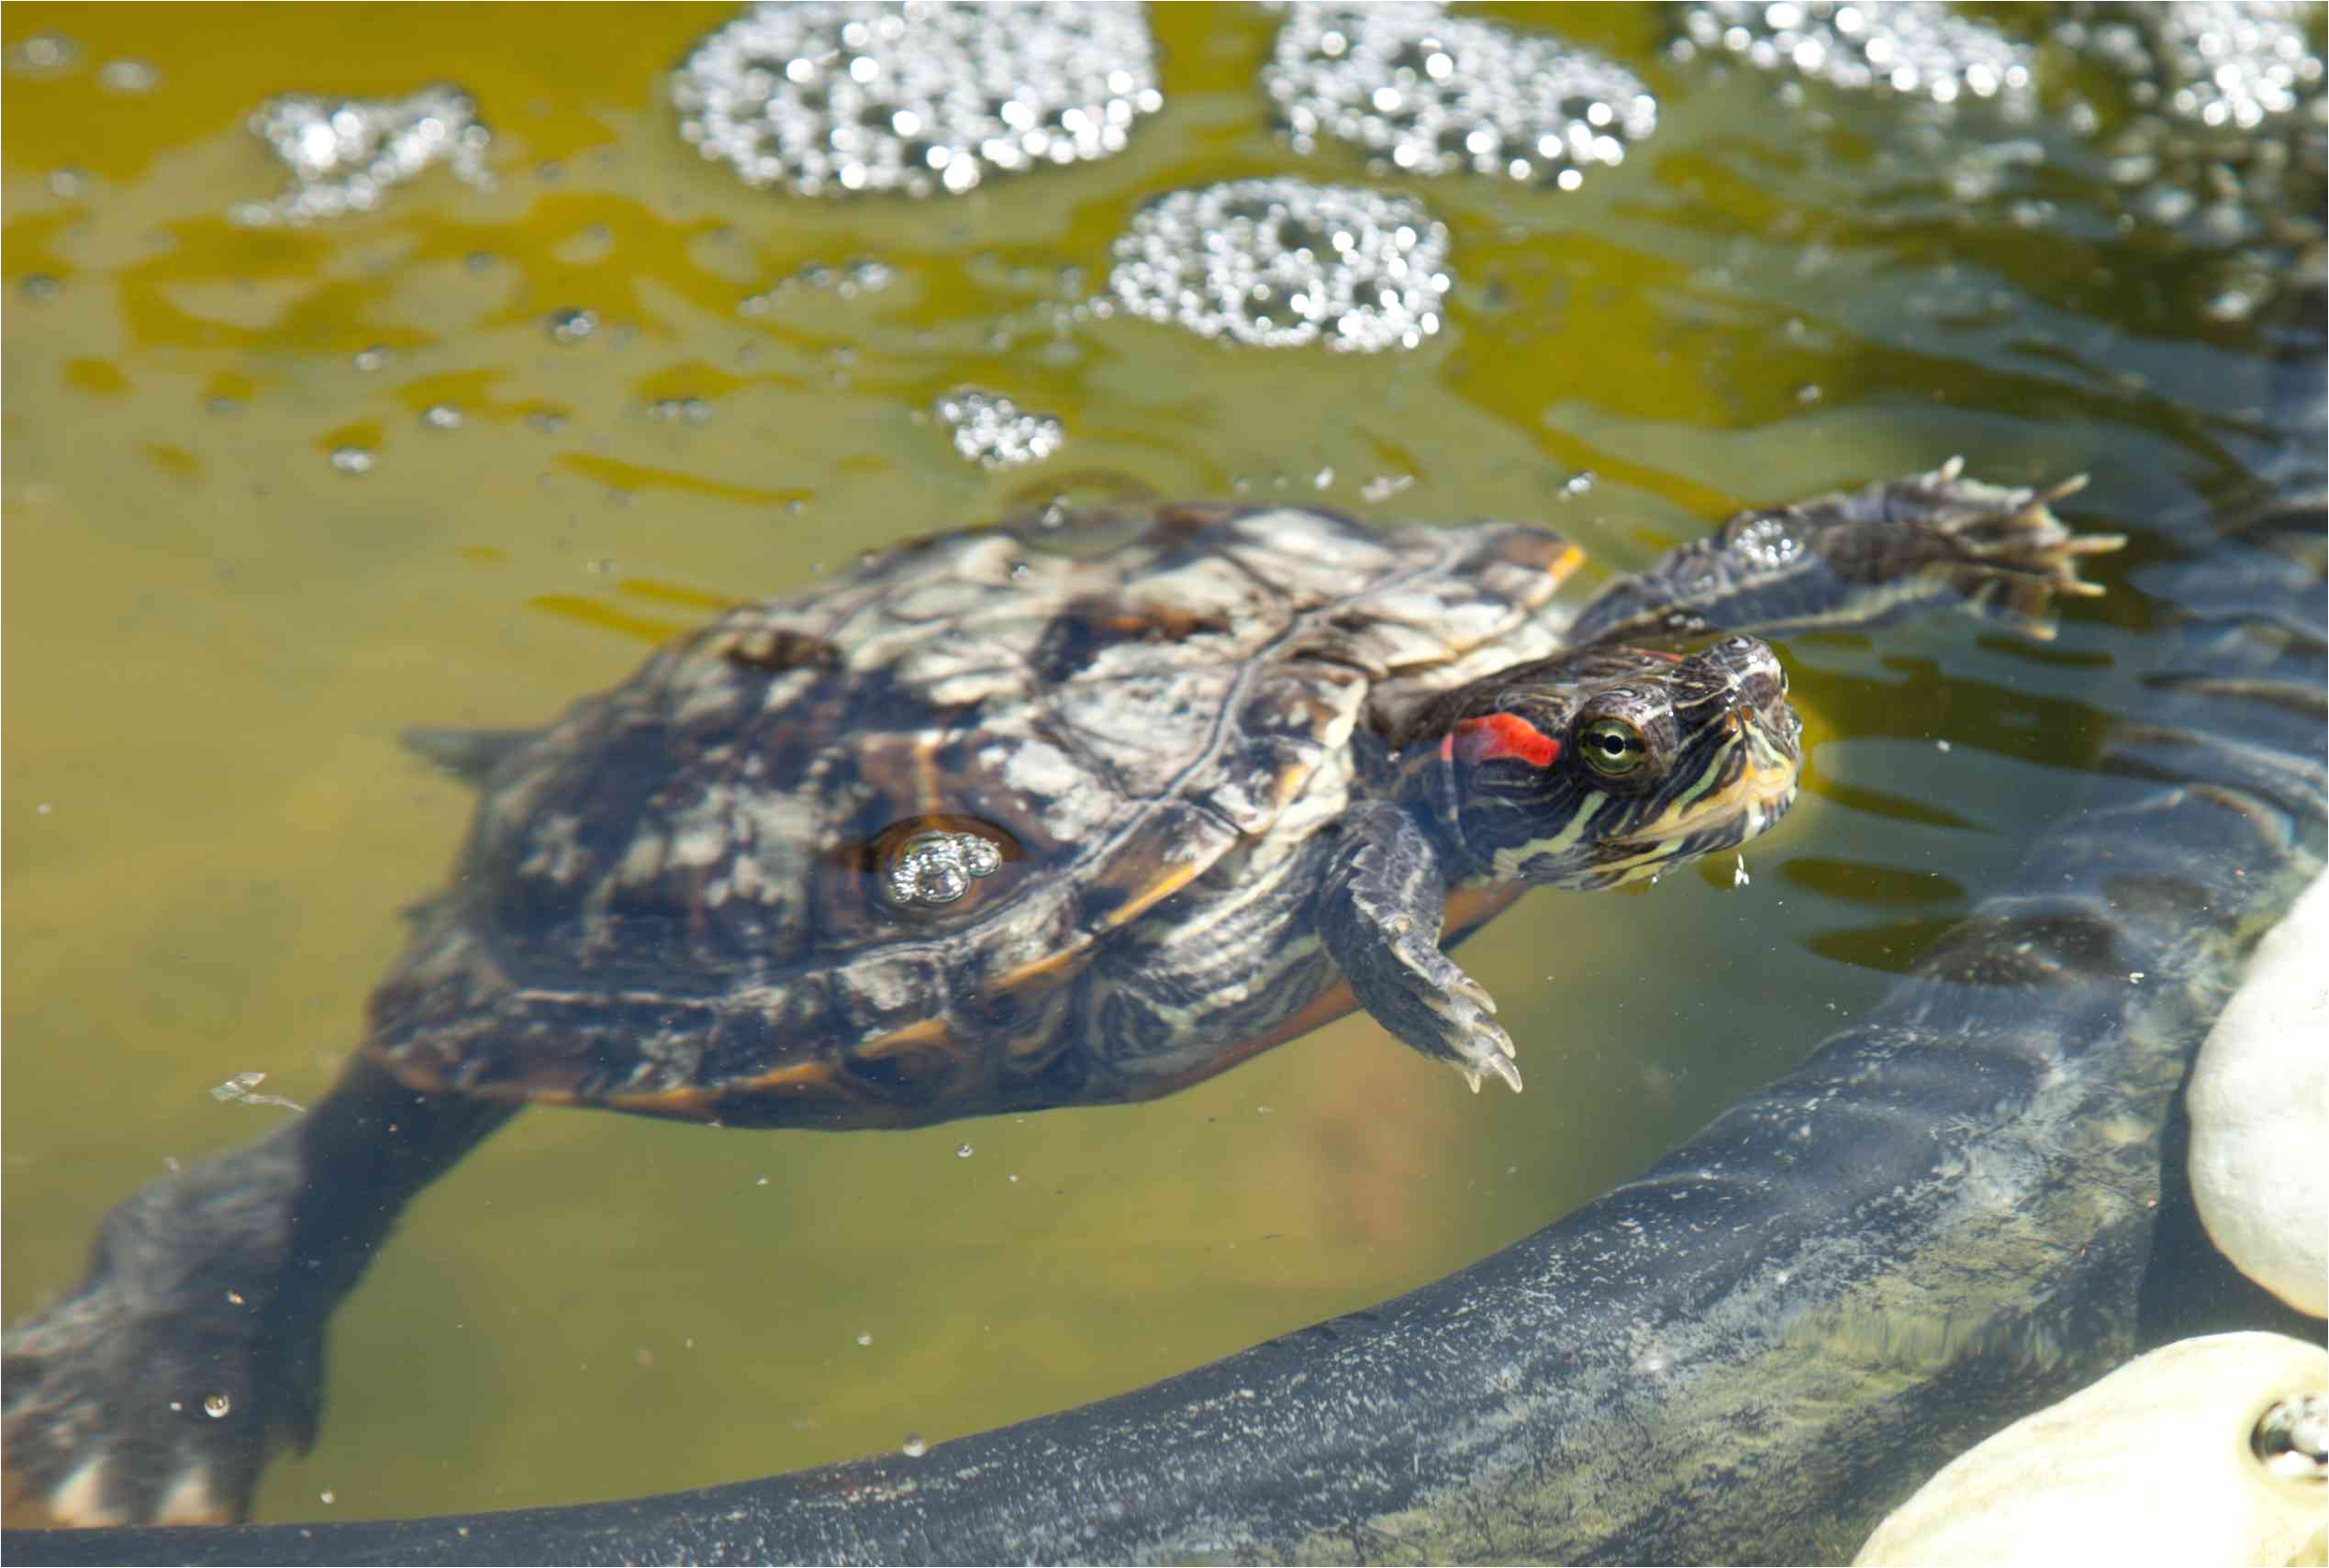 red eared slider in a pond